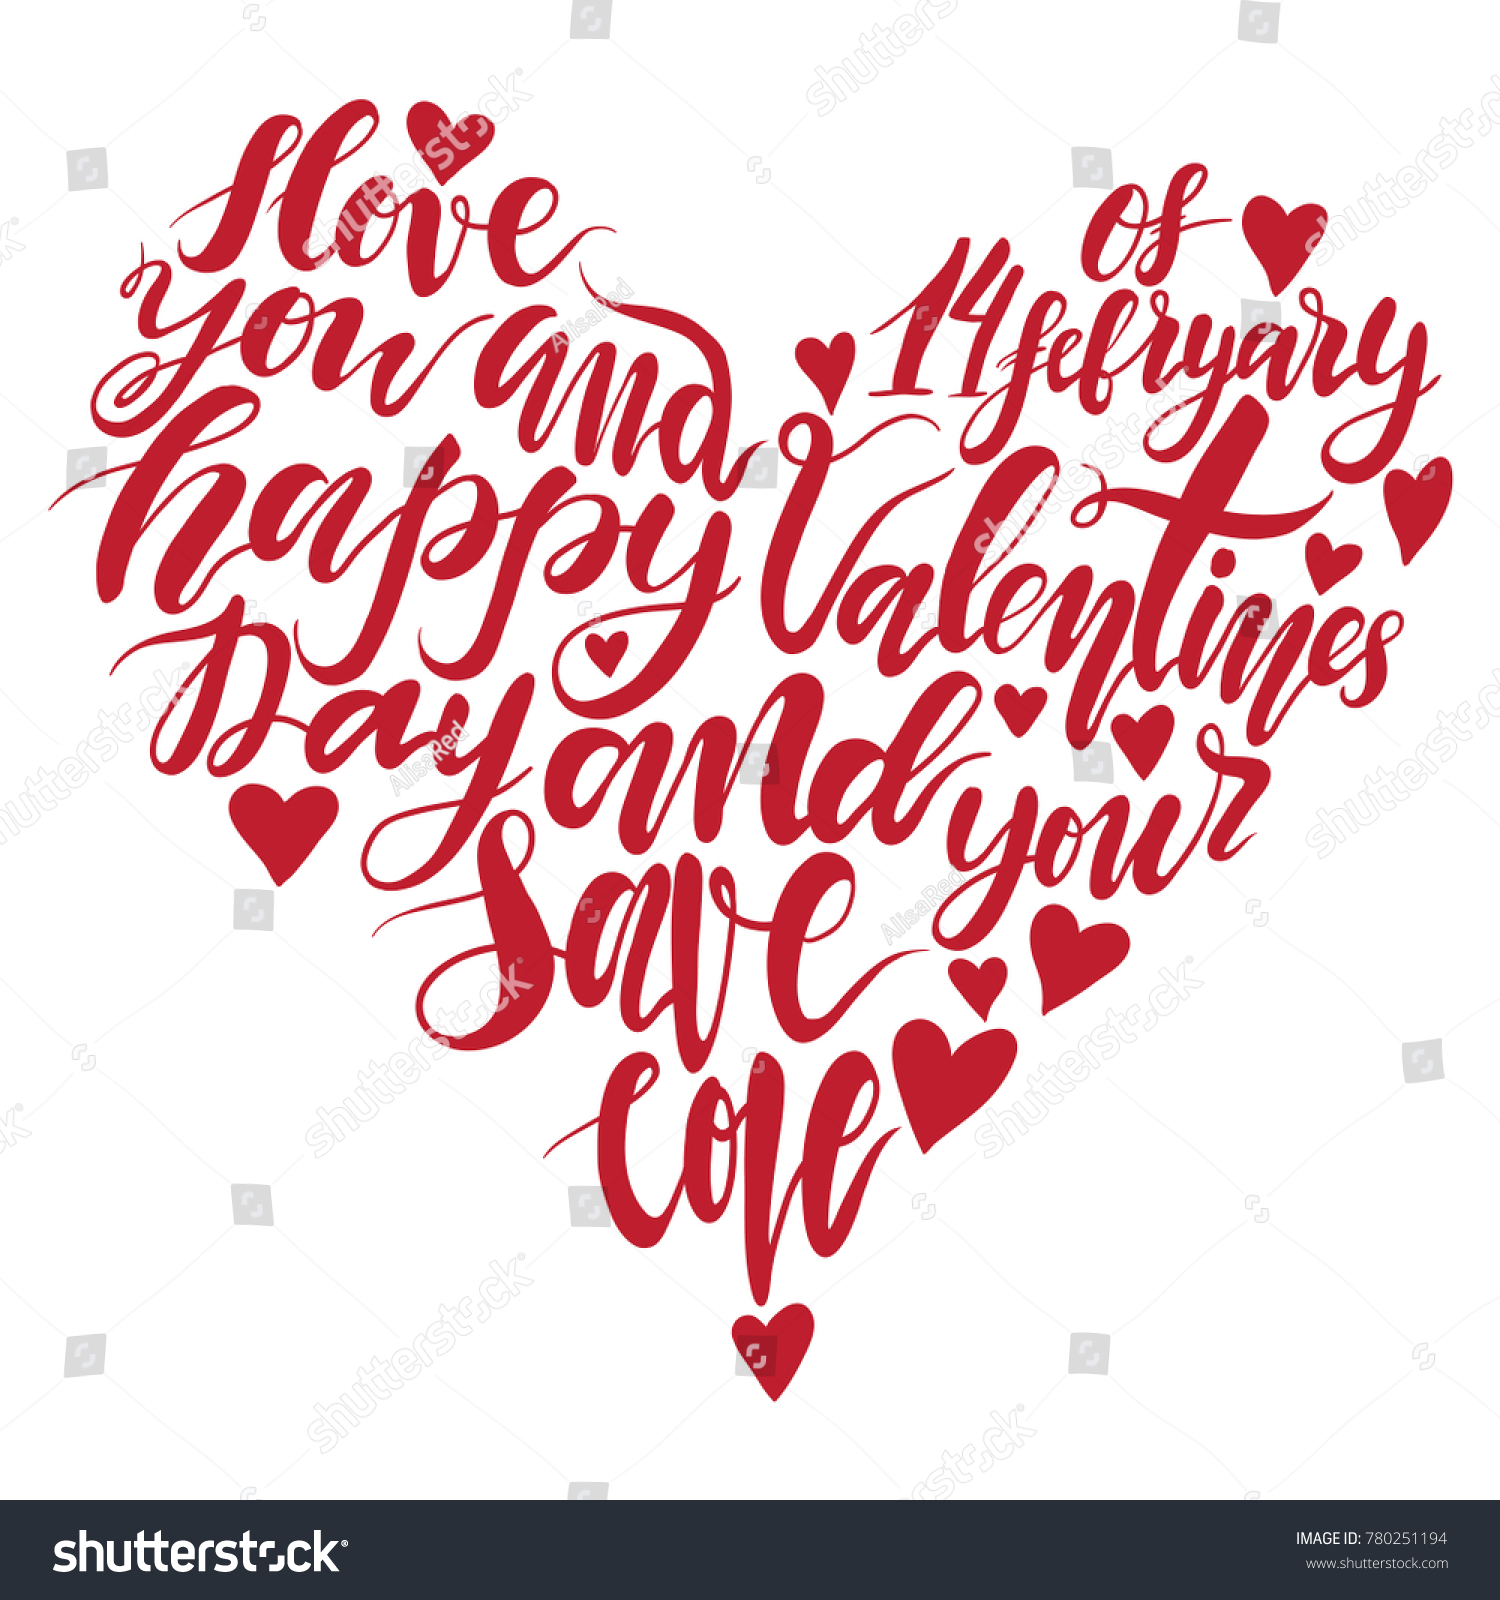 Heart Handwritten Lettering Quote About Love Stock Vector (Royalty ...